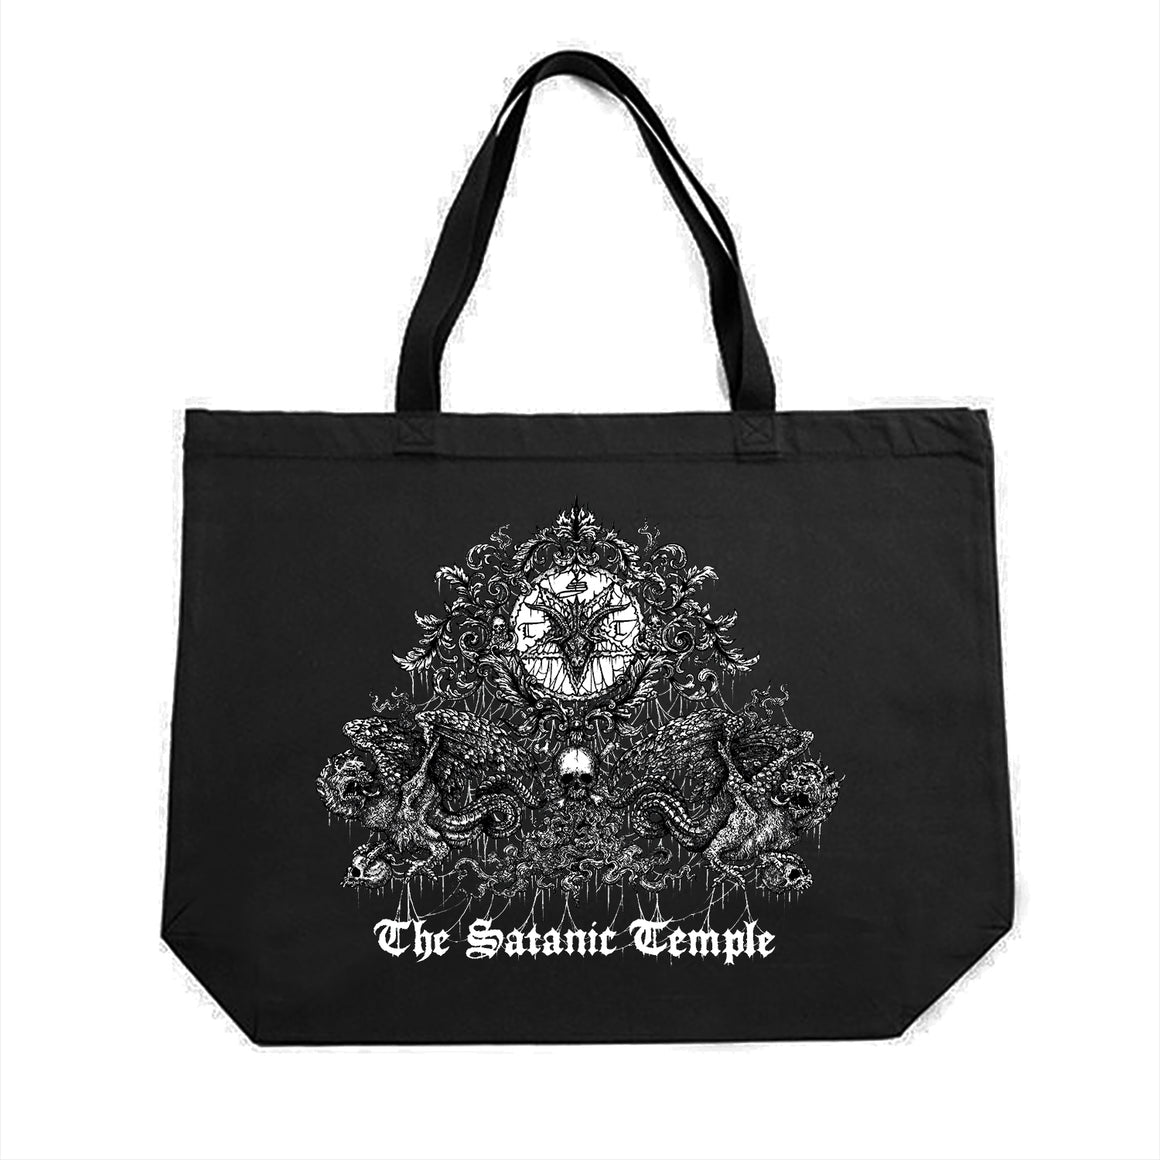 The Satanic Temple Crest Large Tote Bag Designed by Luciana Nedelea